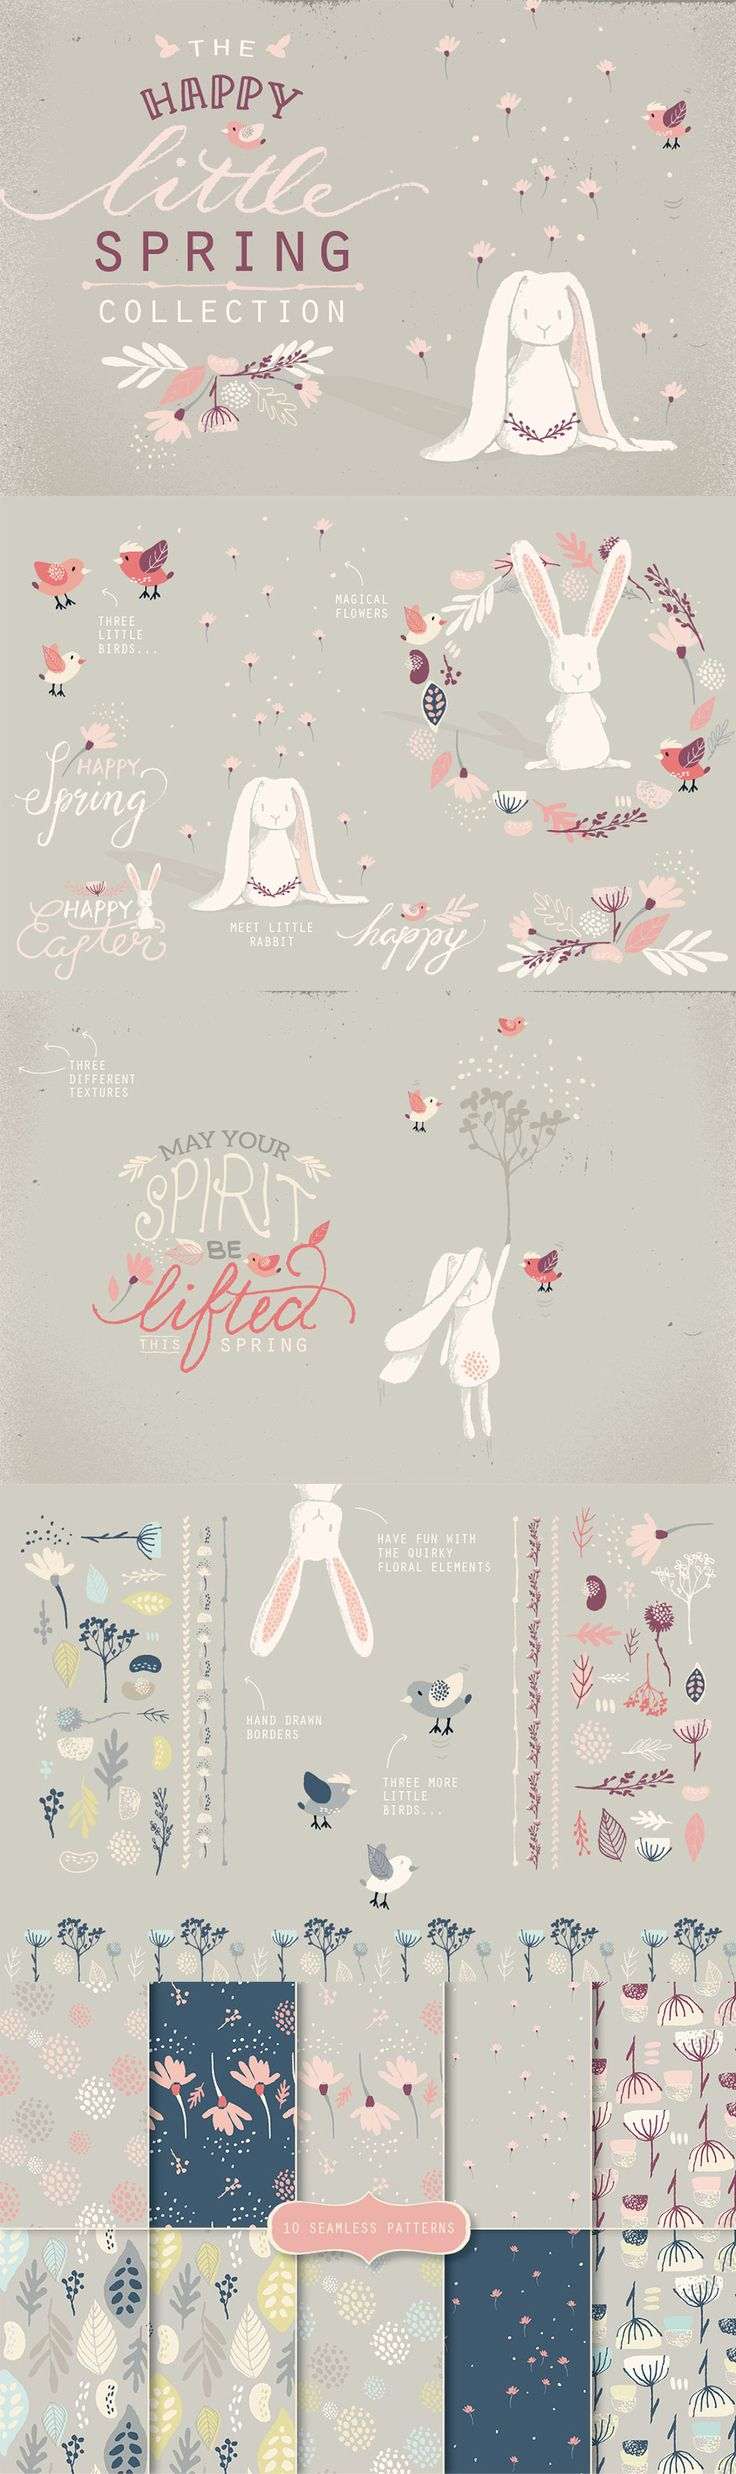 The Happy Little Spring Collection by Lisa Glanz | The Comprehensive, Creative Vectors Bundle Mar 2015 from Design Cuts